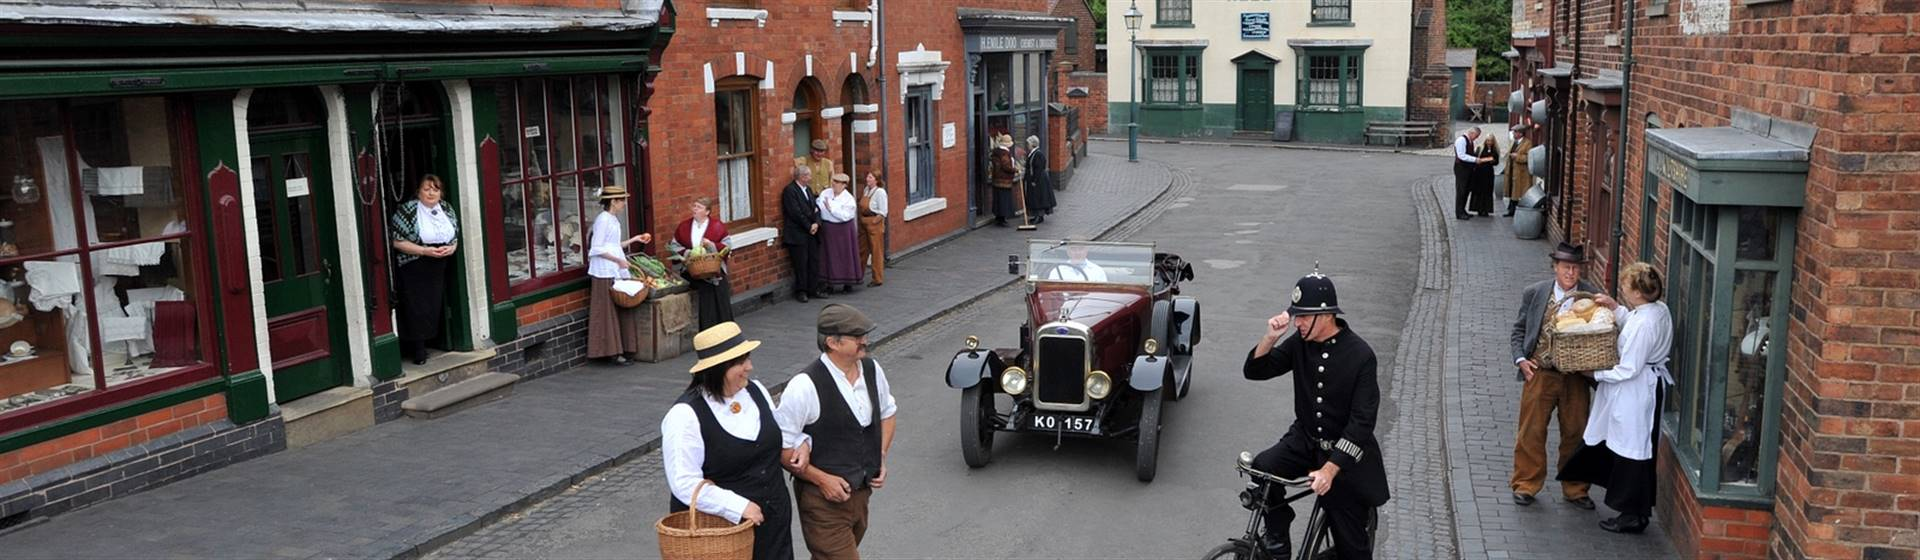 The Black Country Musuem